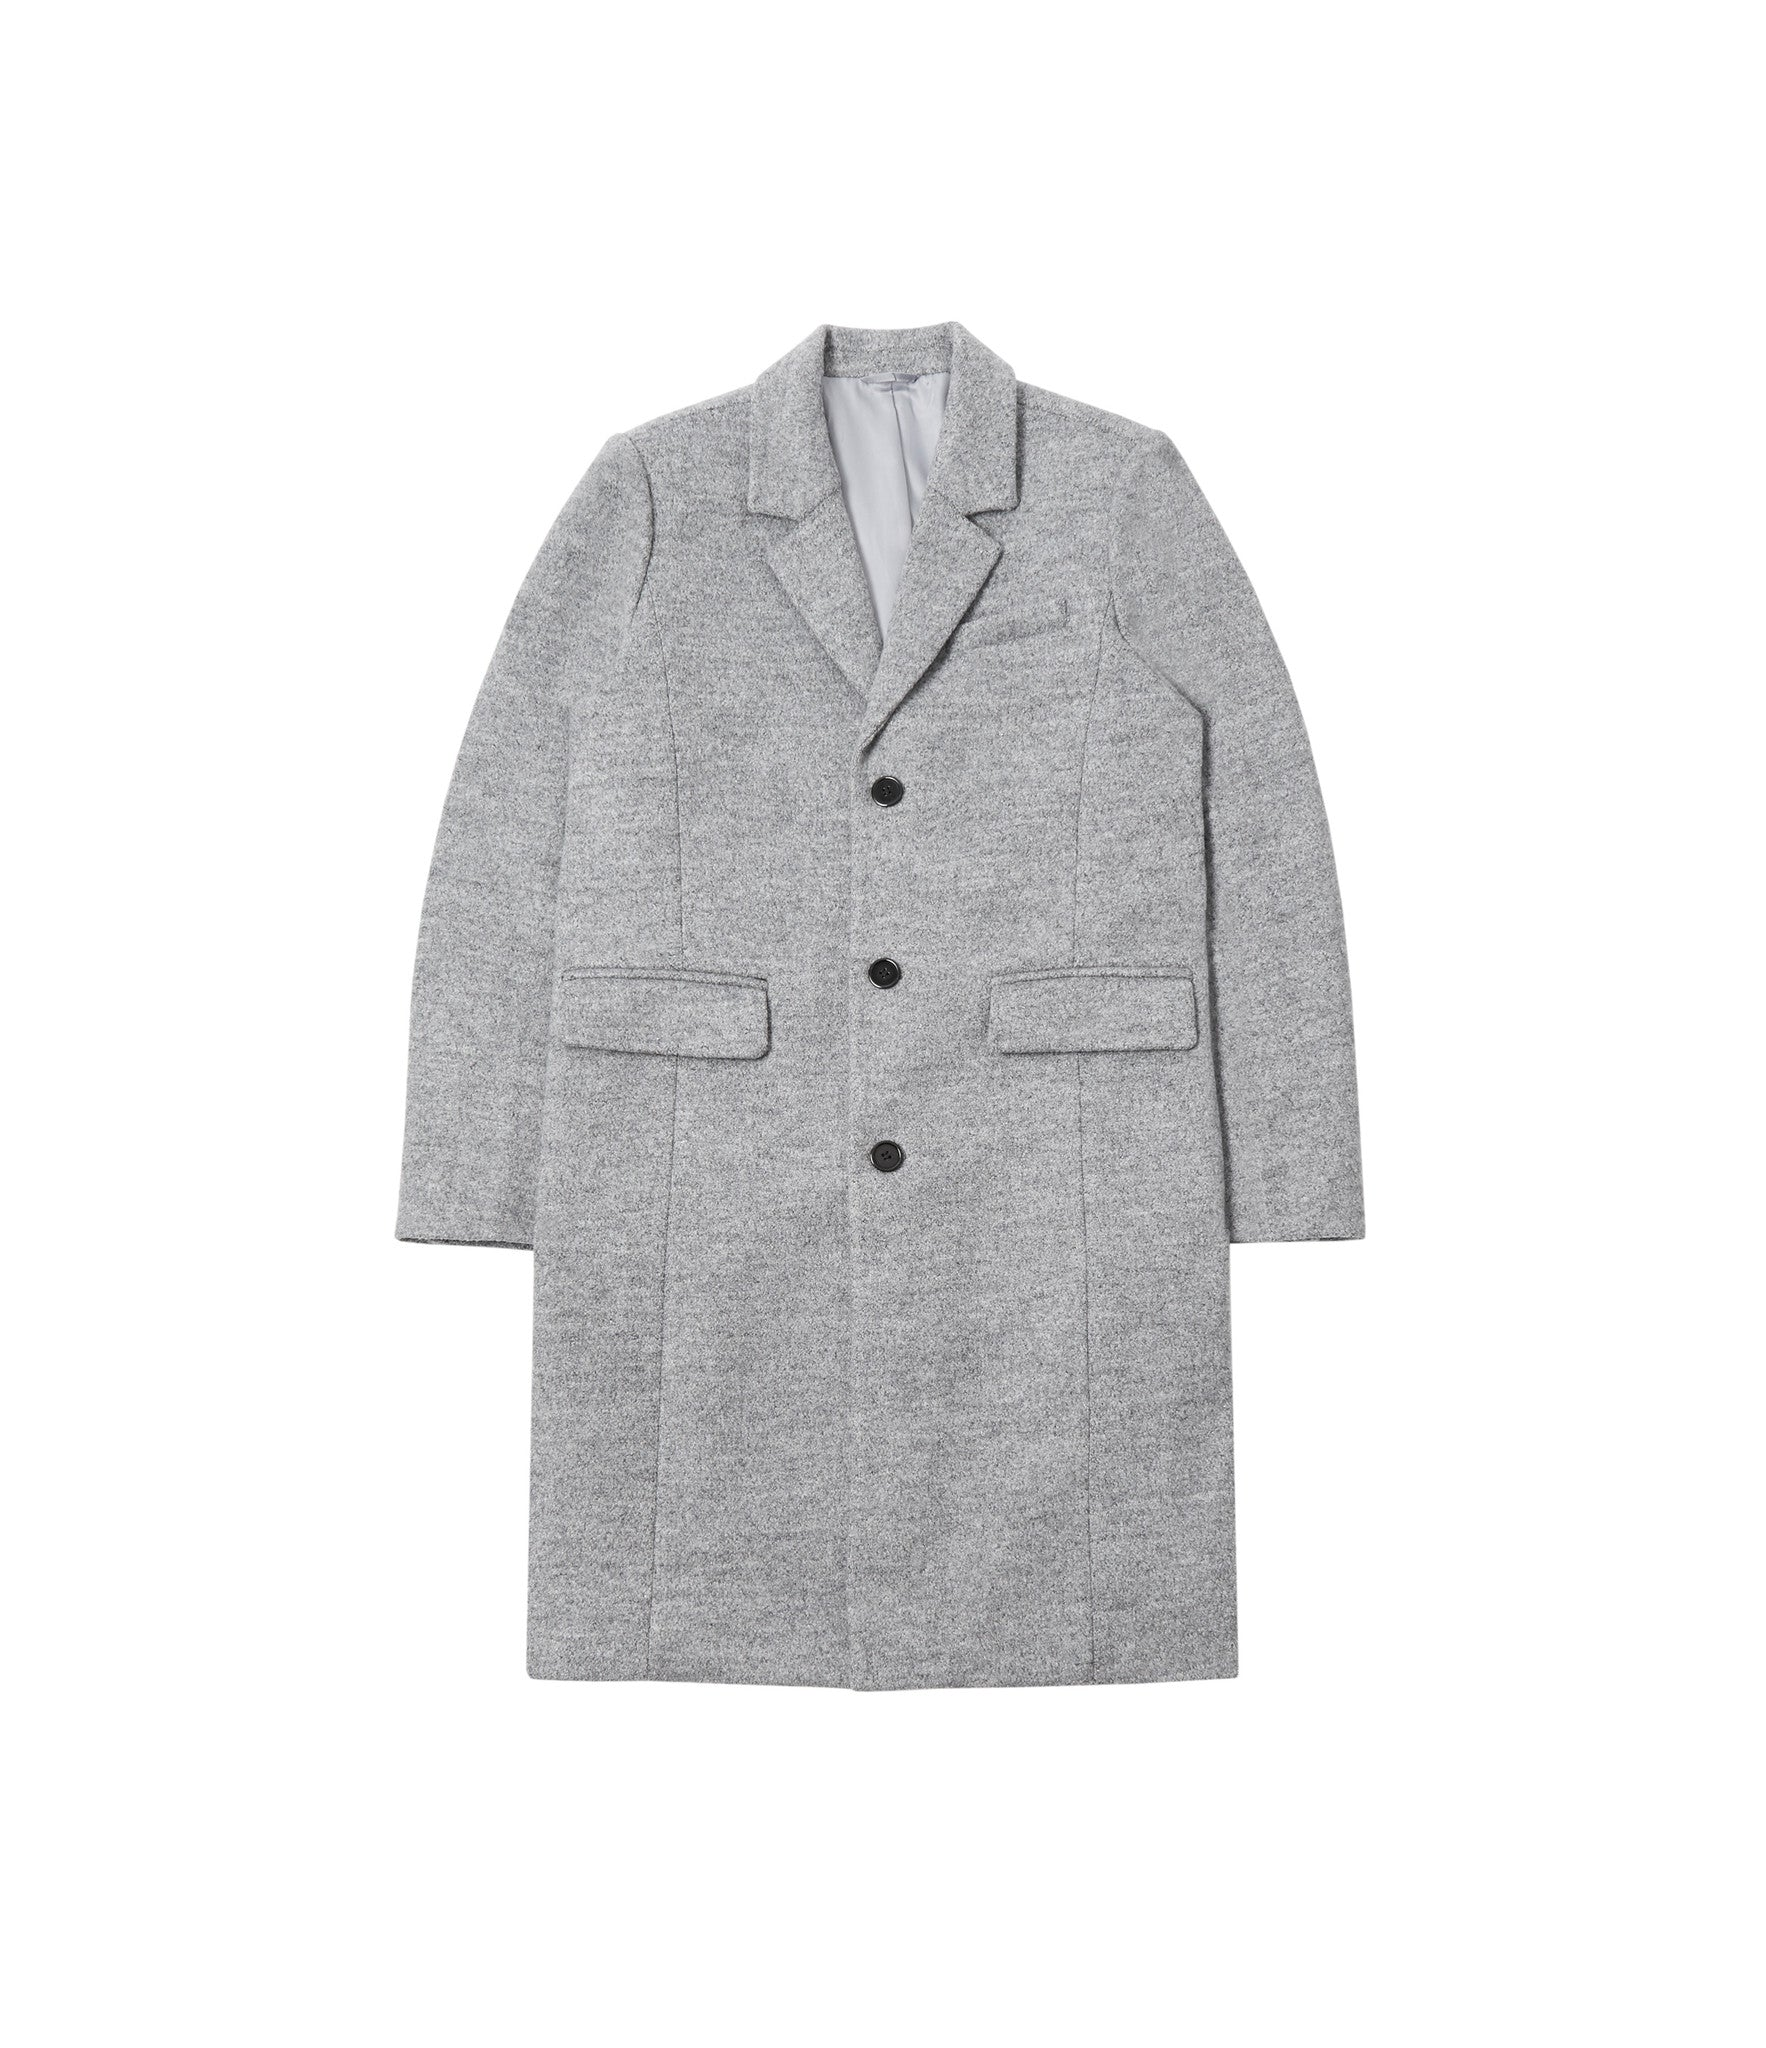 JK212 Mélange Wool Blend Overcoat - Grey - underated london - underatedco - 2